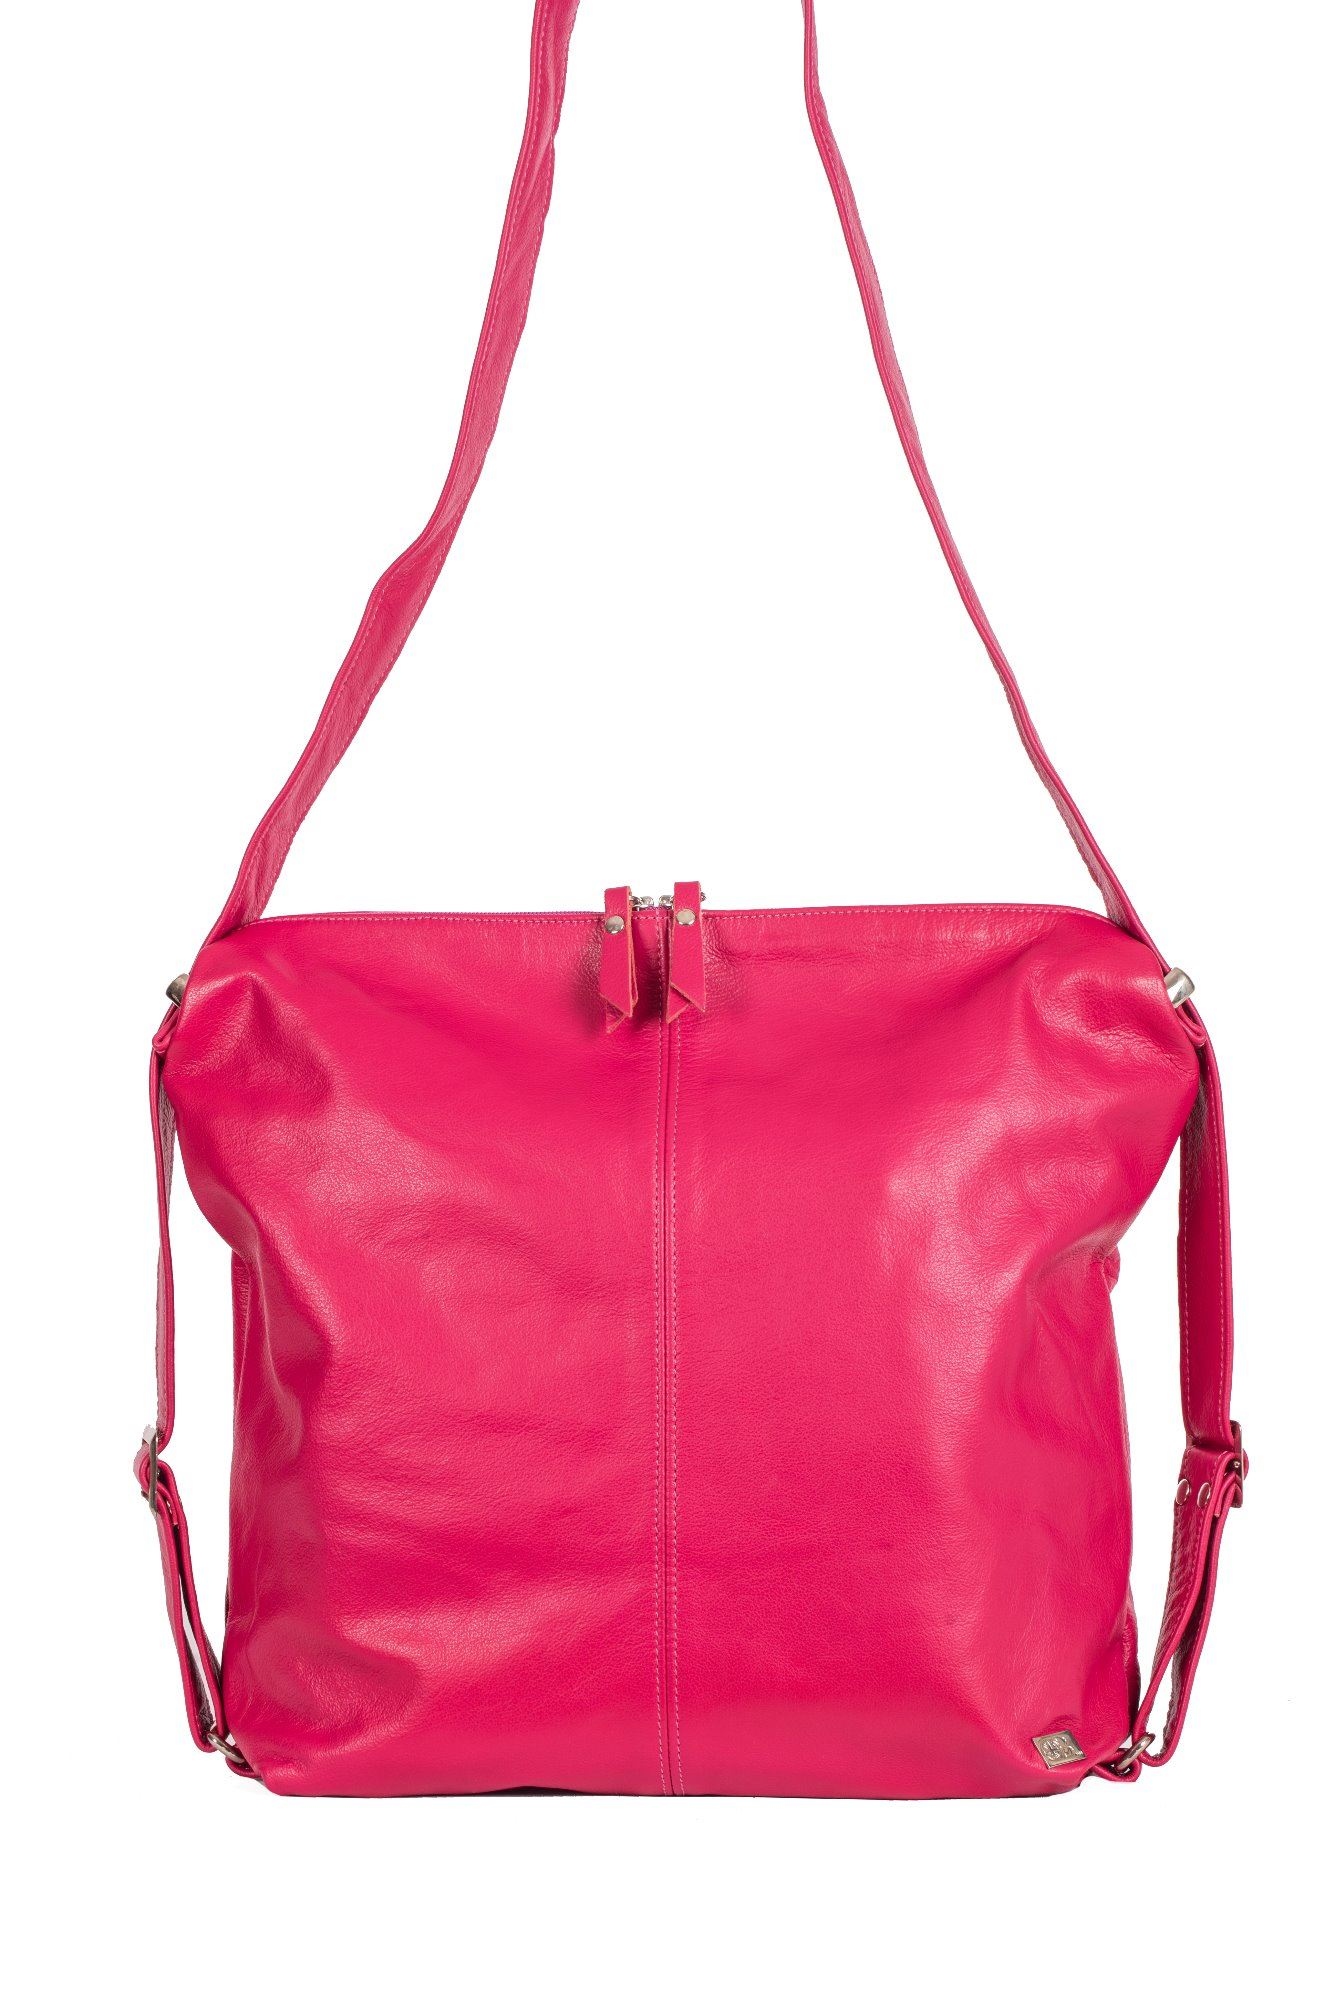 Leather Backpack/Crossbody Bag  - Indie